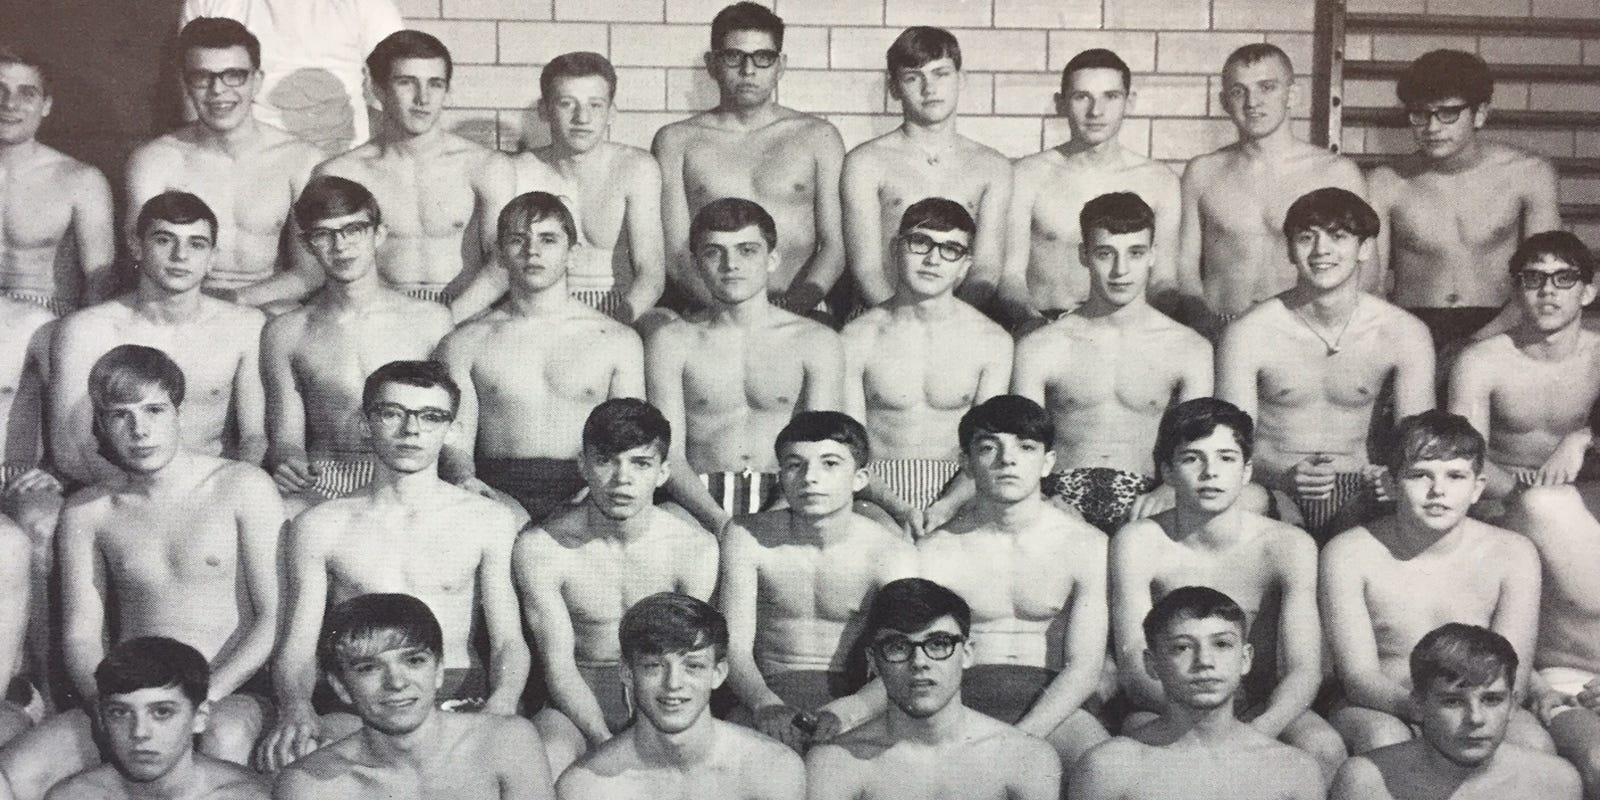 Line of naked guys